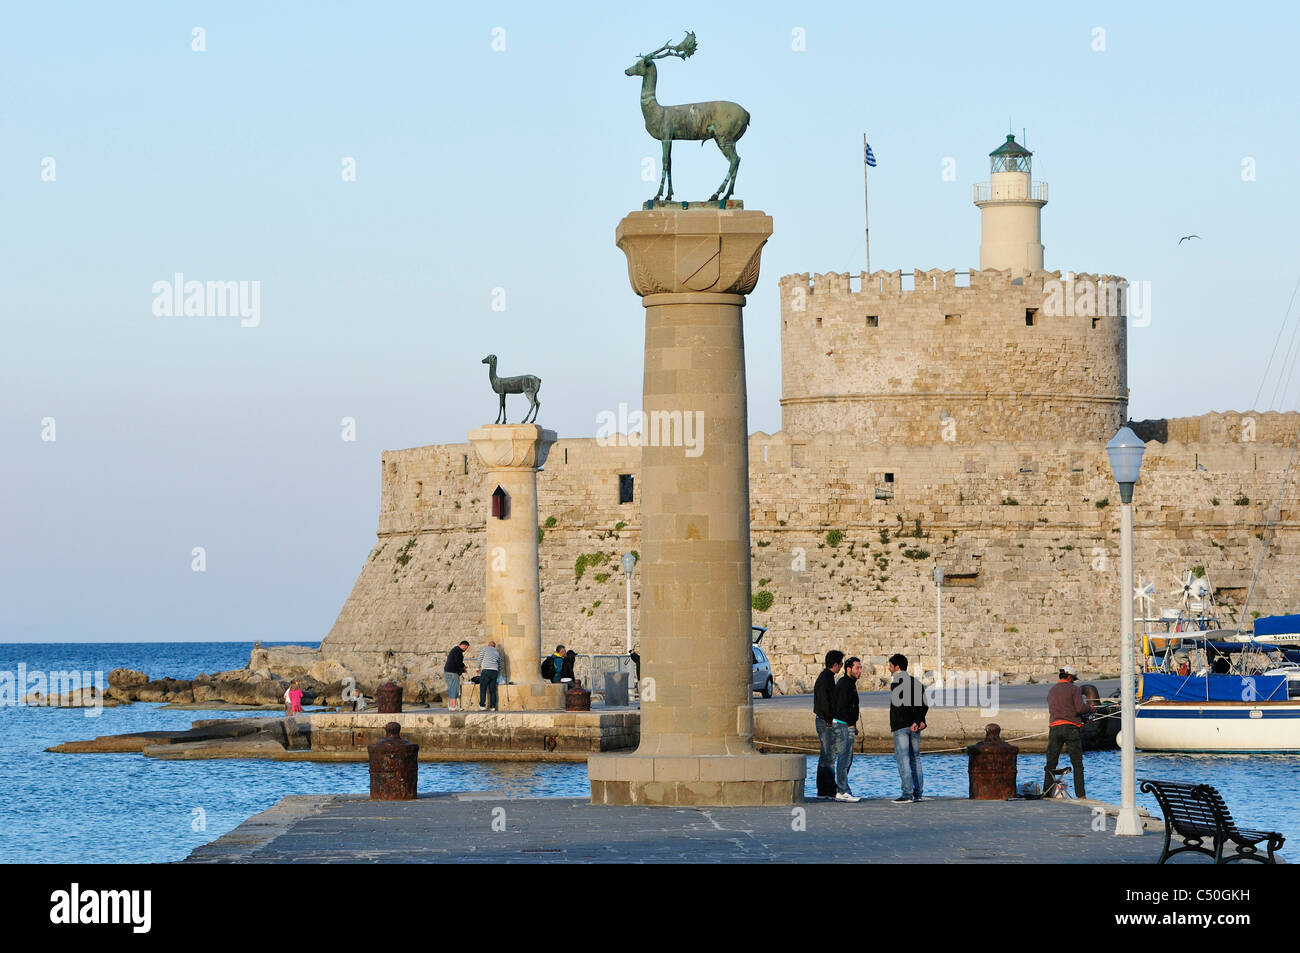 Rhodes. Dodecanese Islands. Greece. Mandraki Harbour, Old Town, Rhodes City. - Stock Image